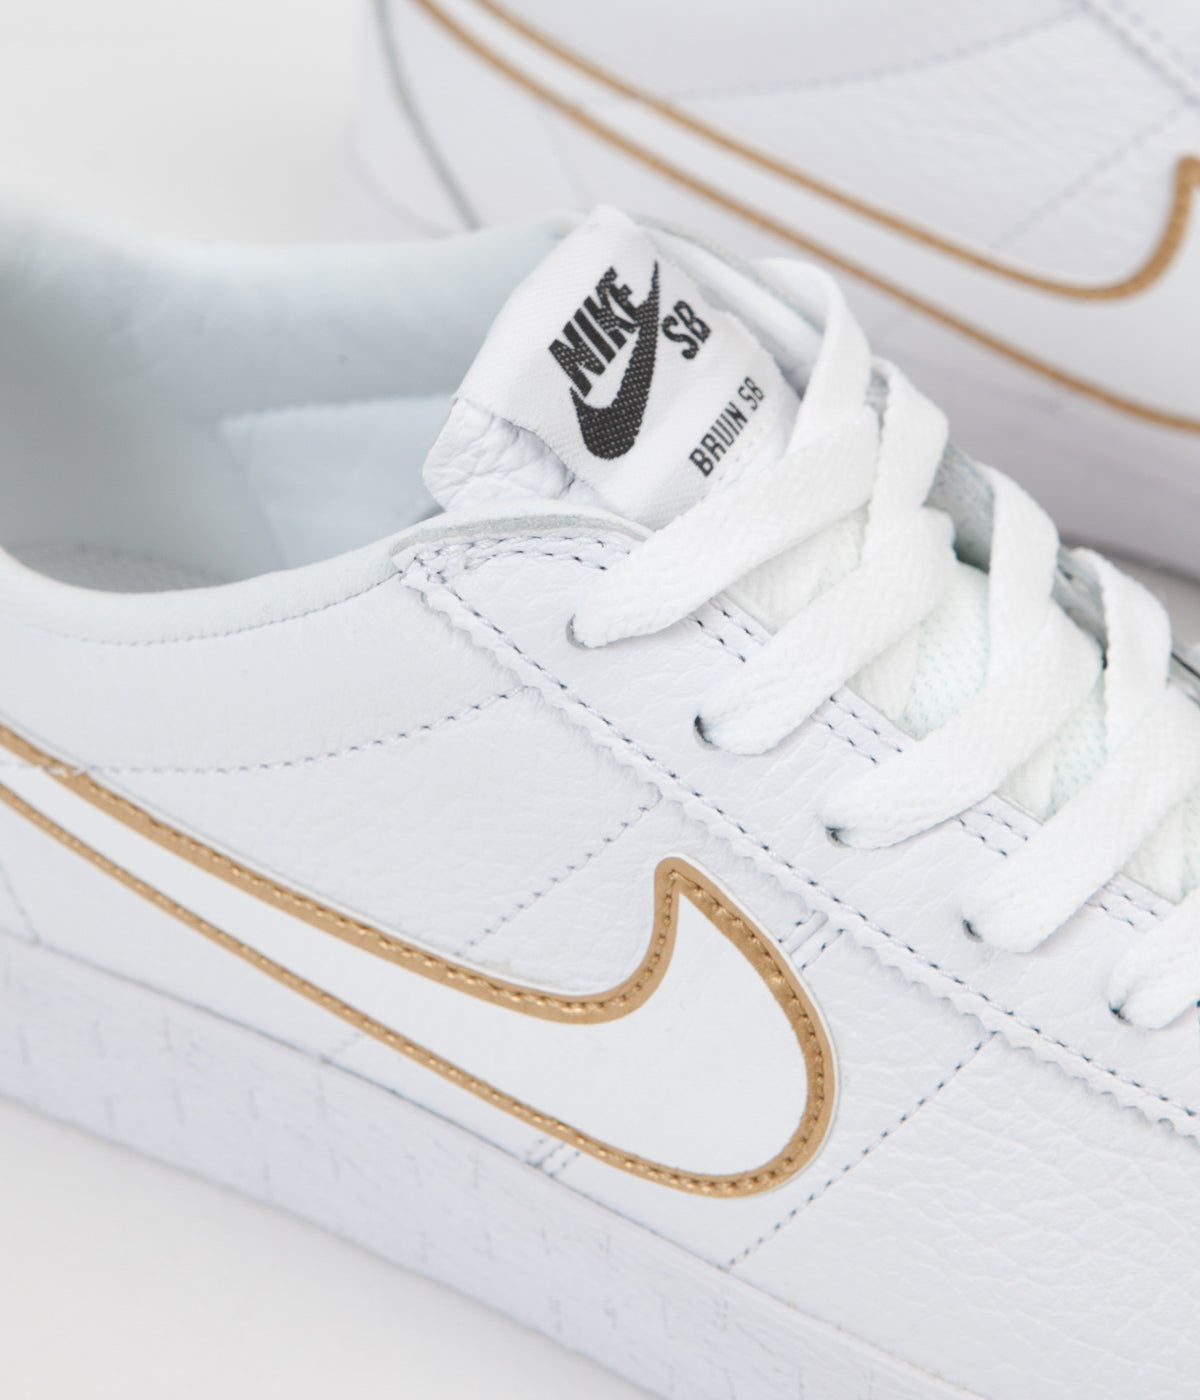 arrives 58588 bb567 ... Nike SB Bruin Premium SE Shoes - White   White - Metallic Gold - Black  ...